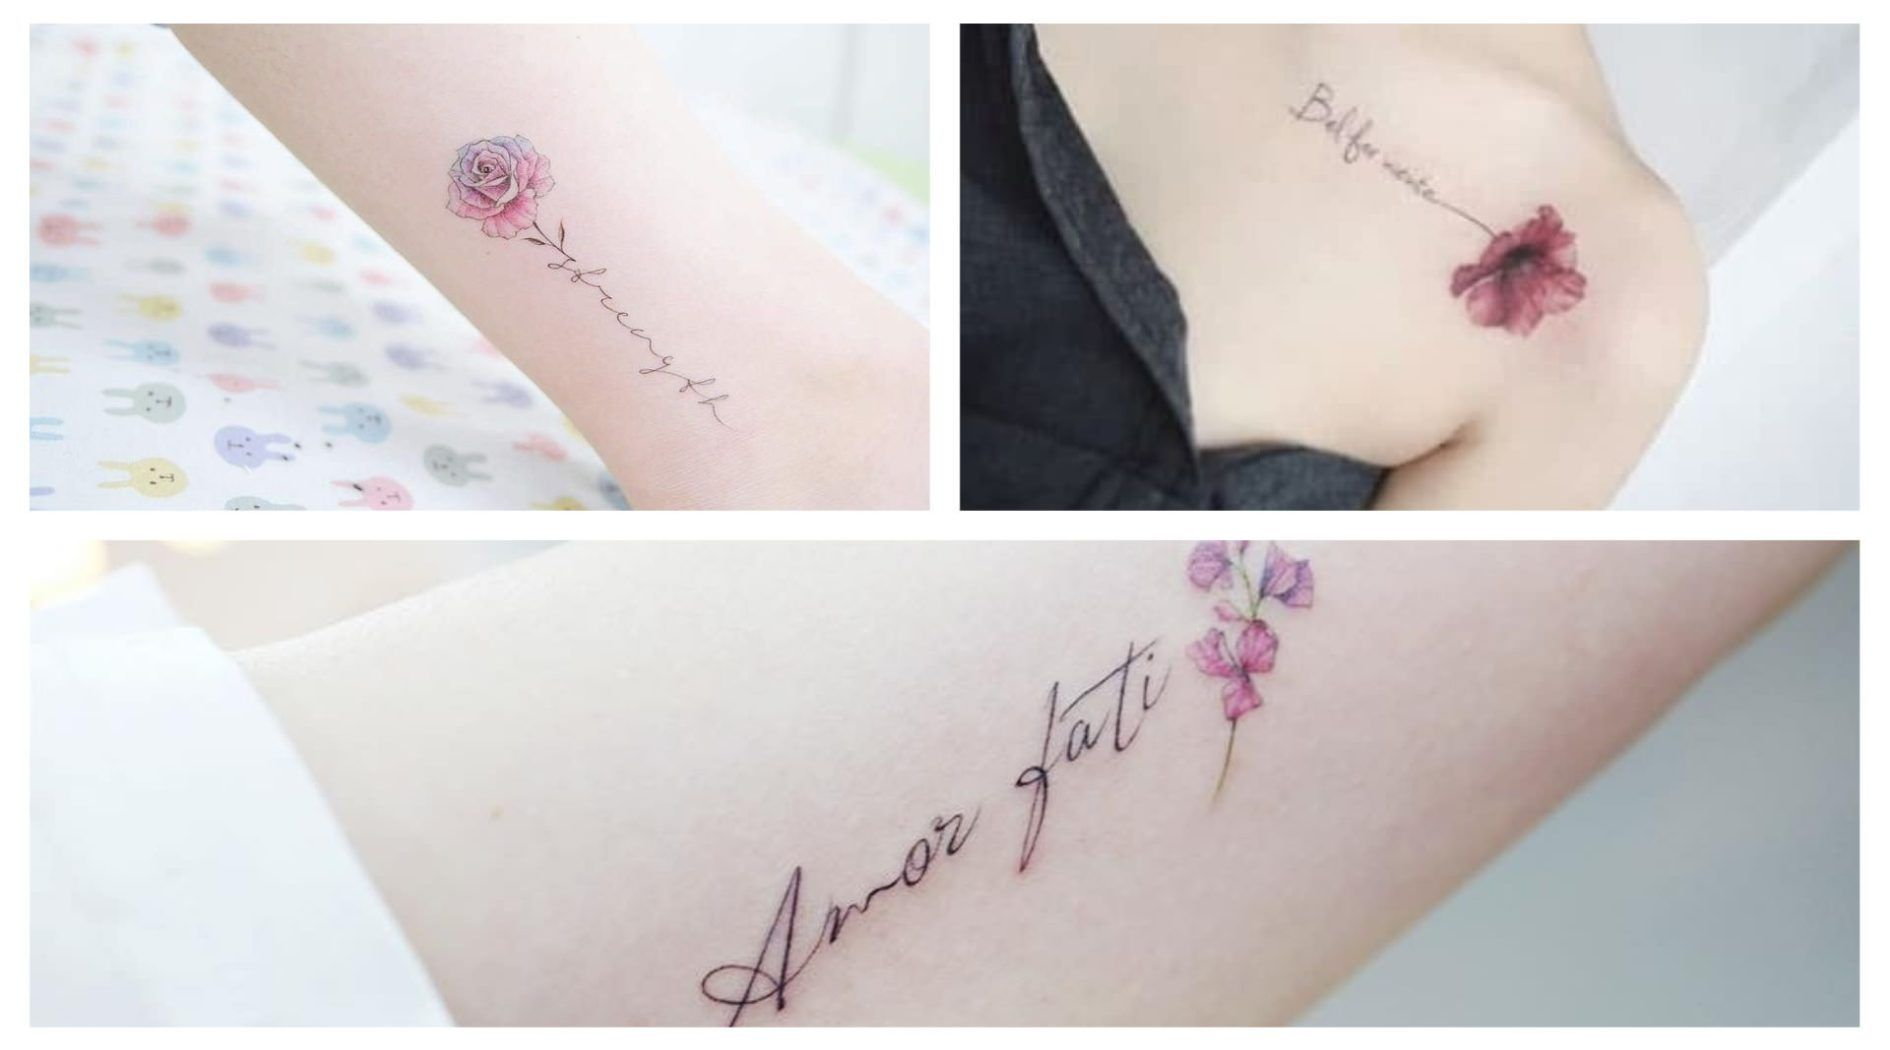 Super Femeninos Estos Tatuajes De Flores Con Letras Lotus Flower Tattoo Tattoos Flower Tattoo